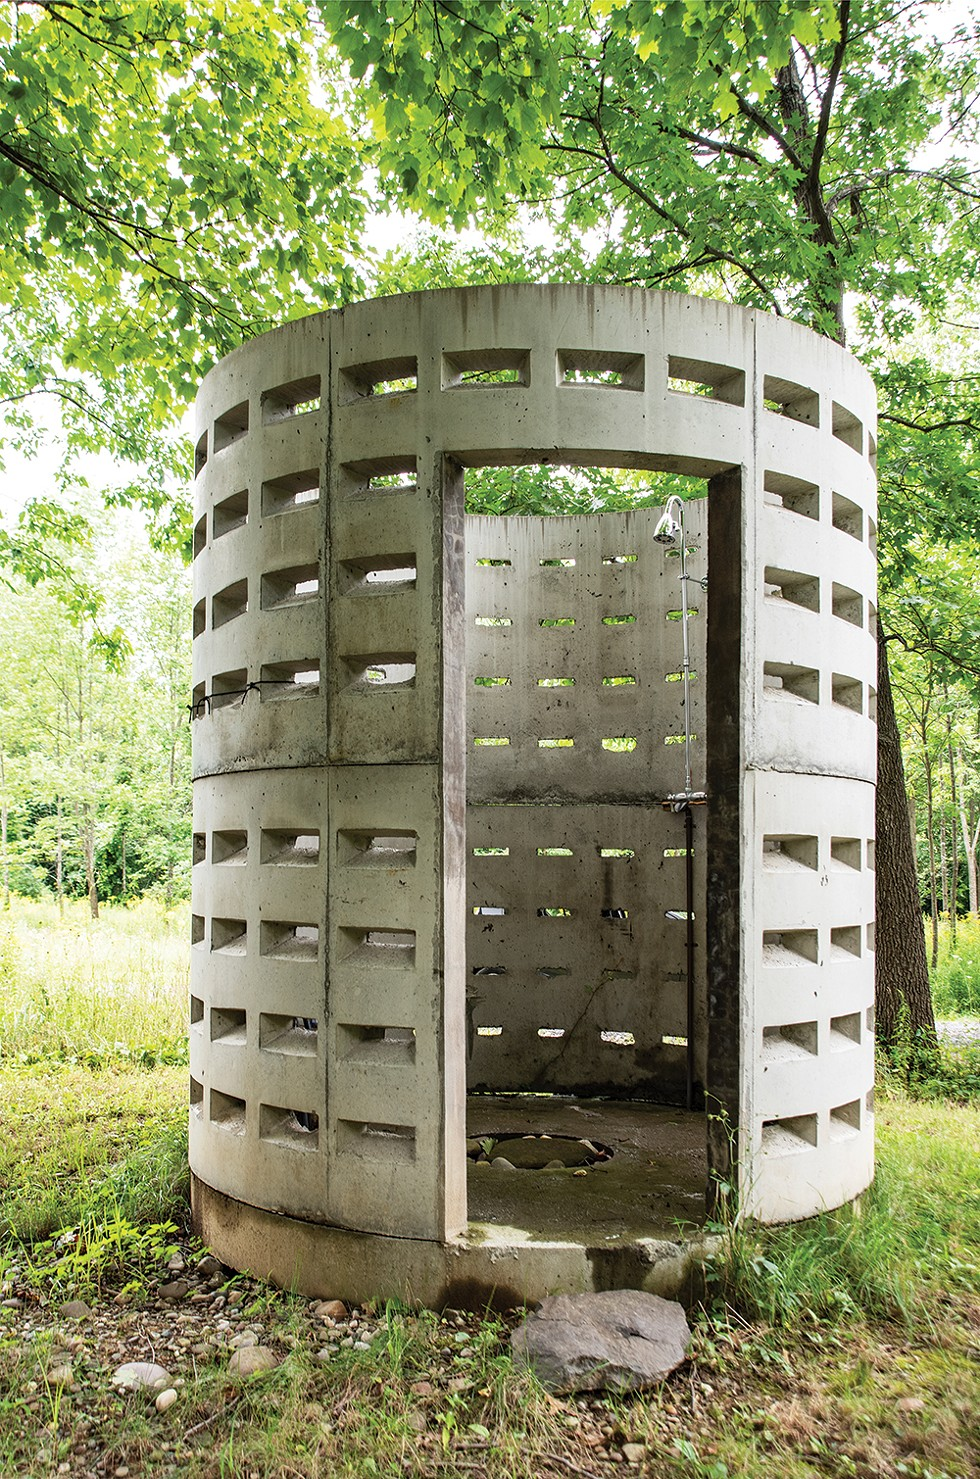 """To create an innovative outdoor shower, the couple bought two septic dry wells from local concrete supplier Keeler Vault, stacked them and installed plumbing. """"At first they said, 'You want to do what with the septic wells?' But now everyone gets it,"""" says Betts. - PHOTO: DEBORAH DEGRAFFENREID"""